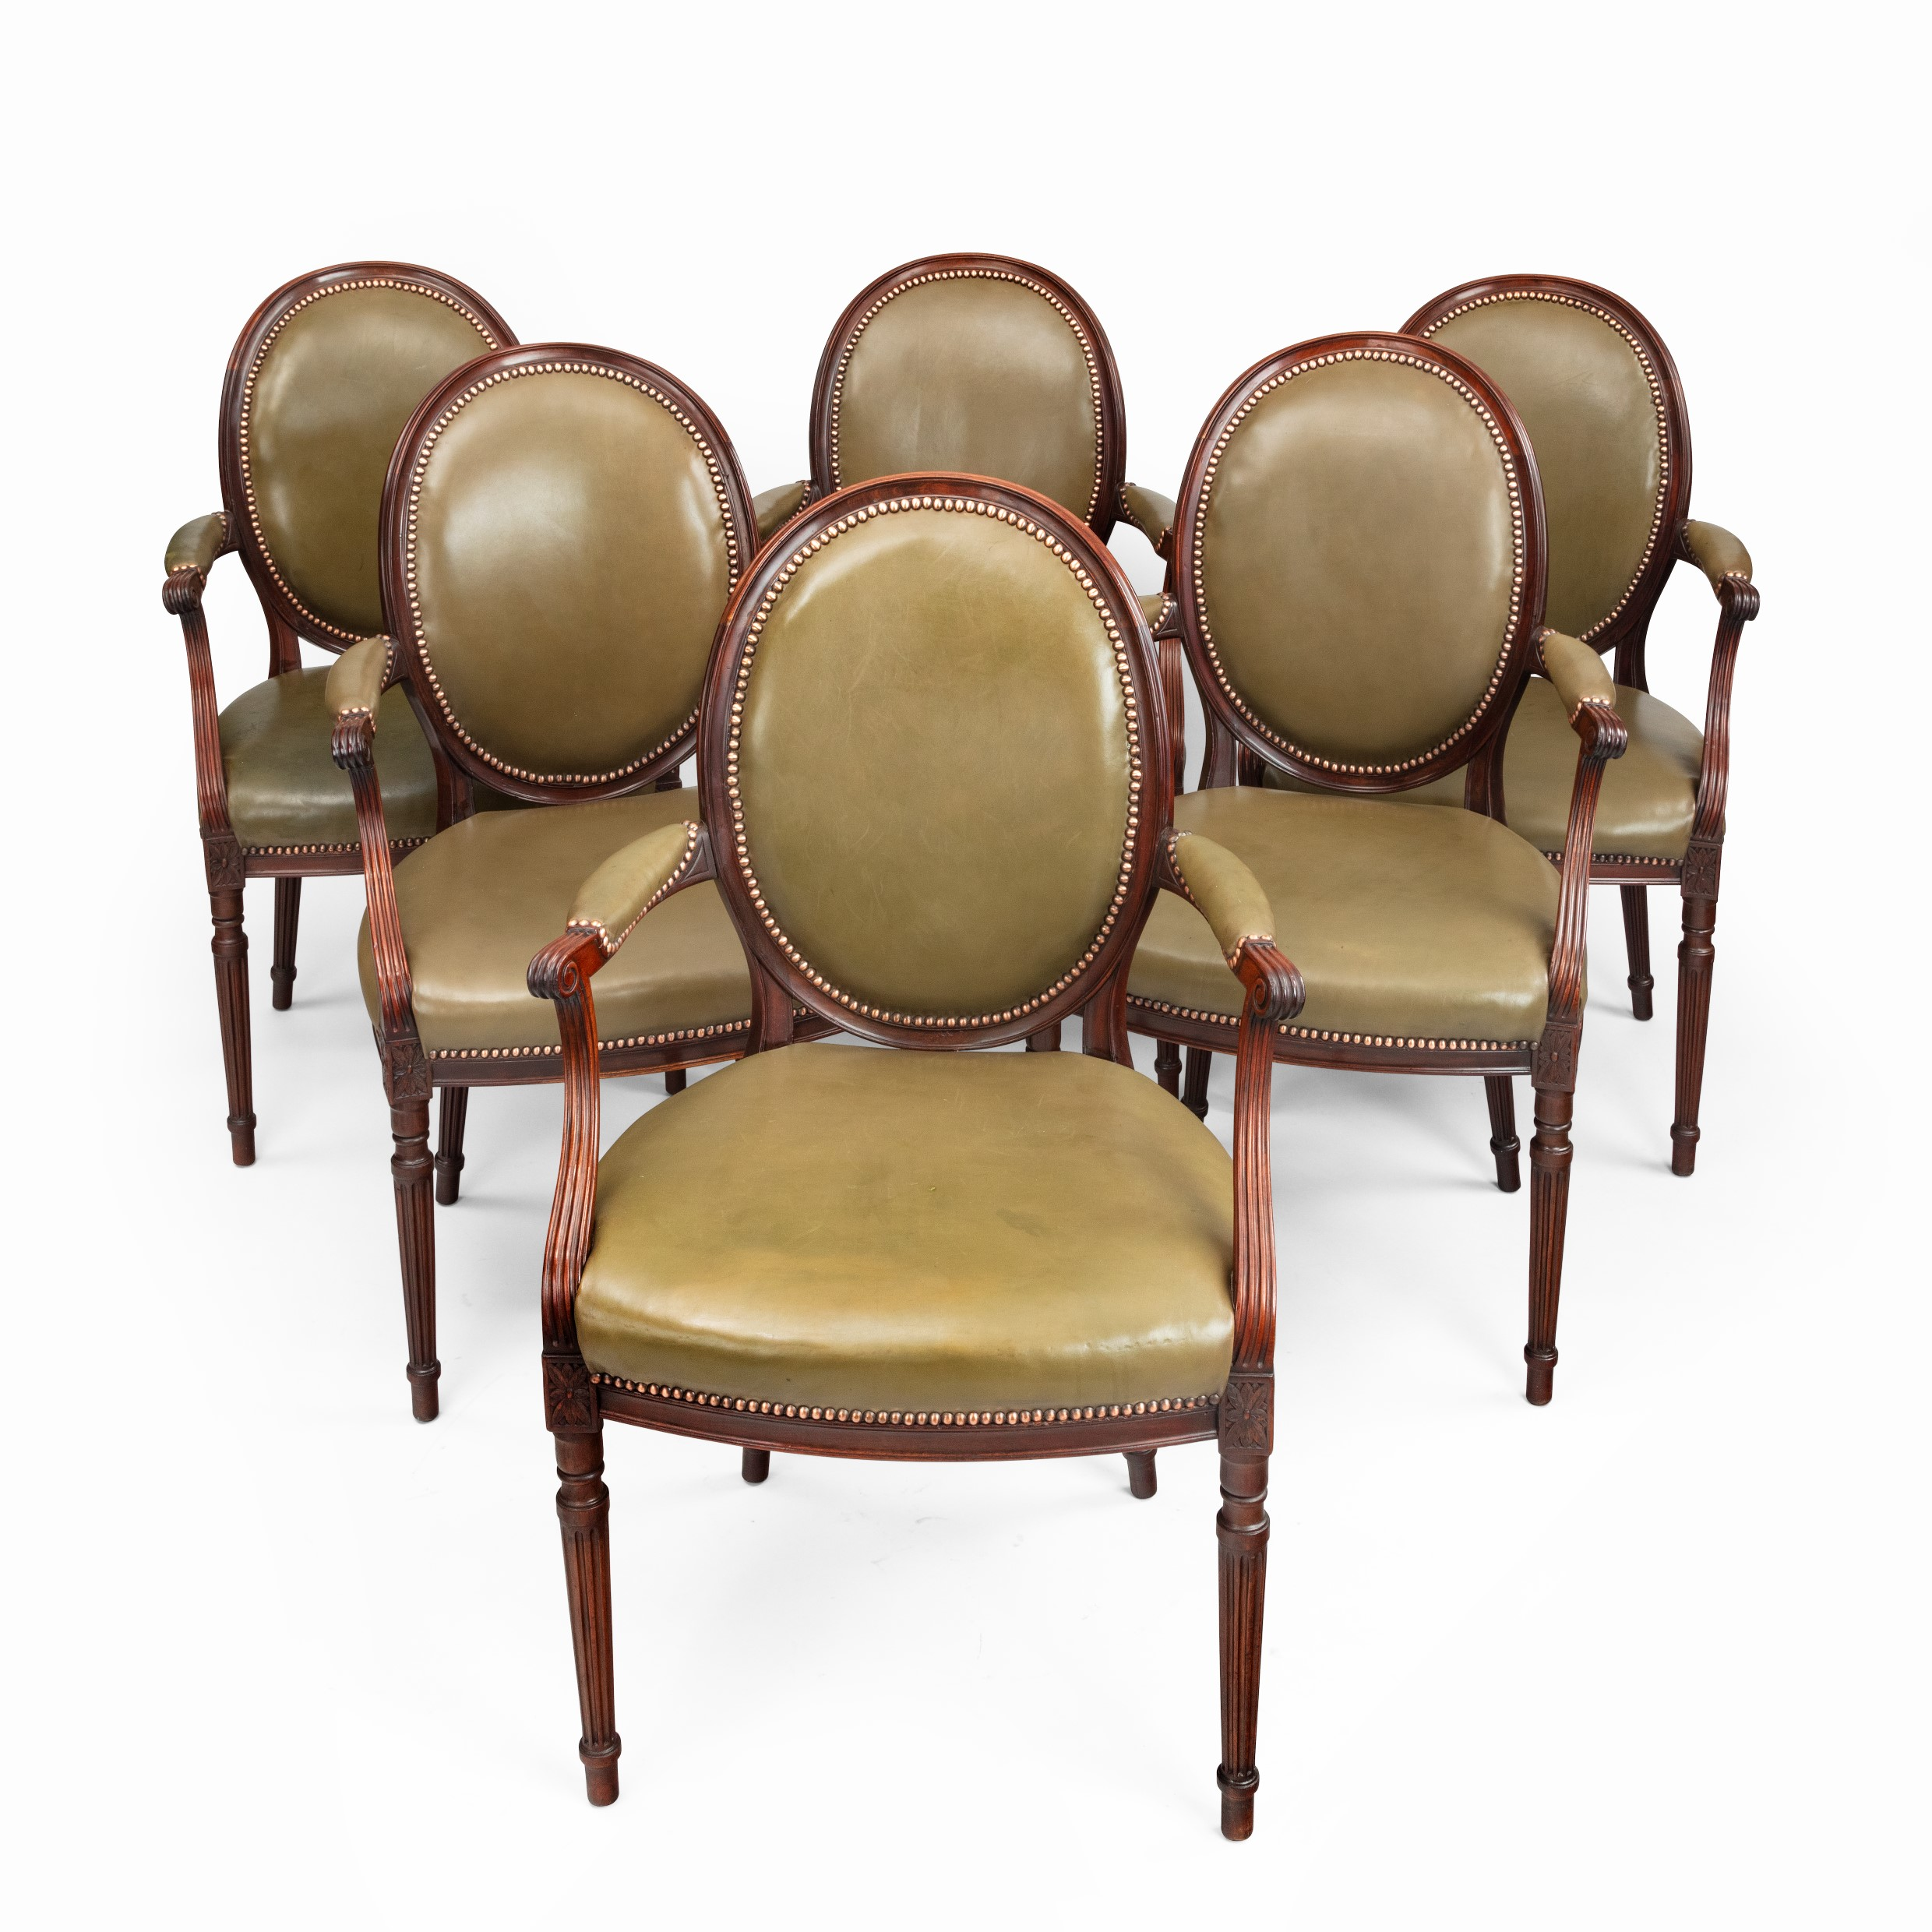 Six Edwardian mahogany chairs by Gill & Reigate